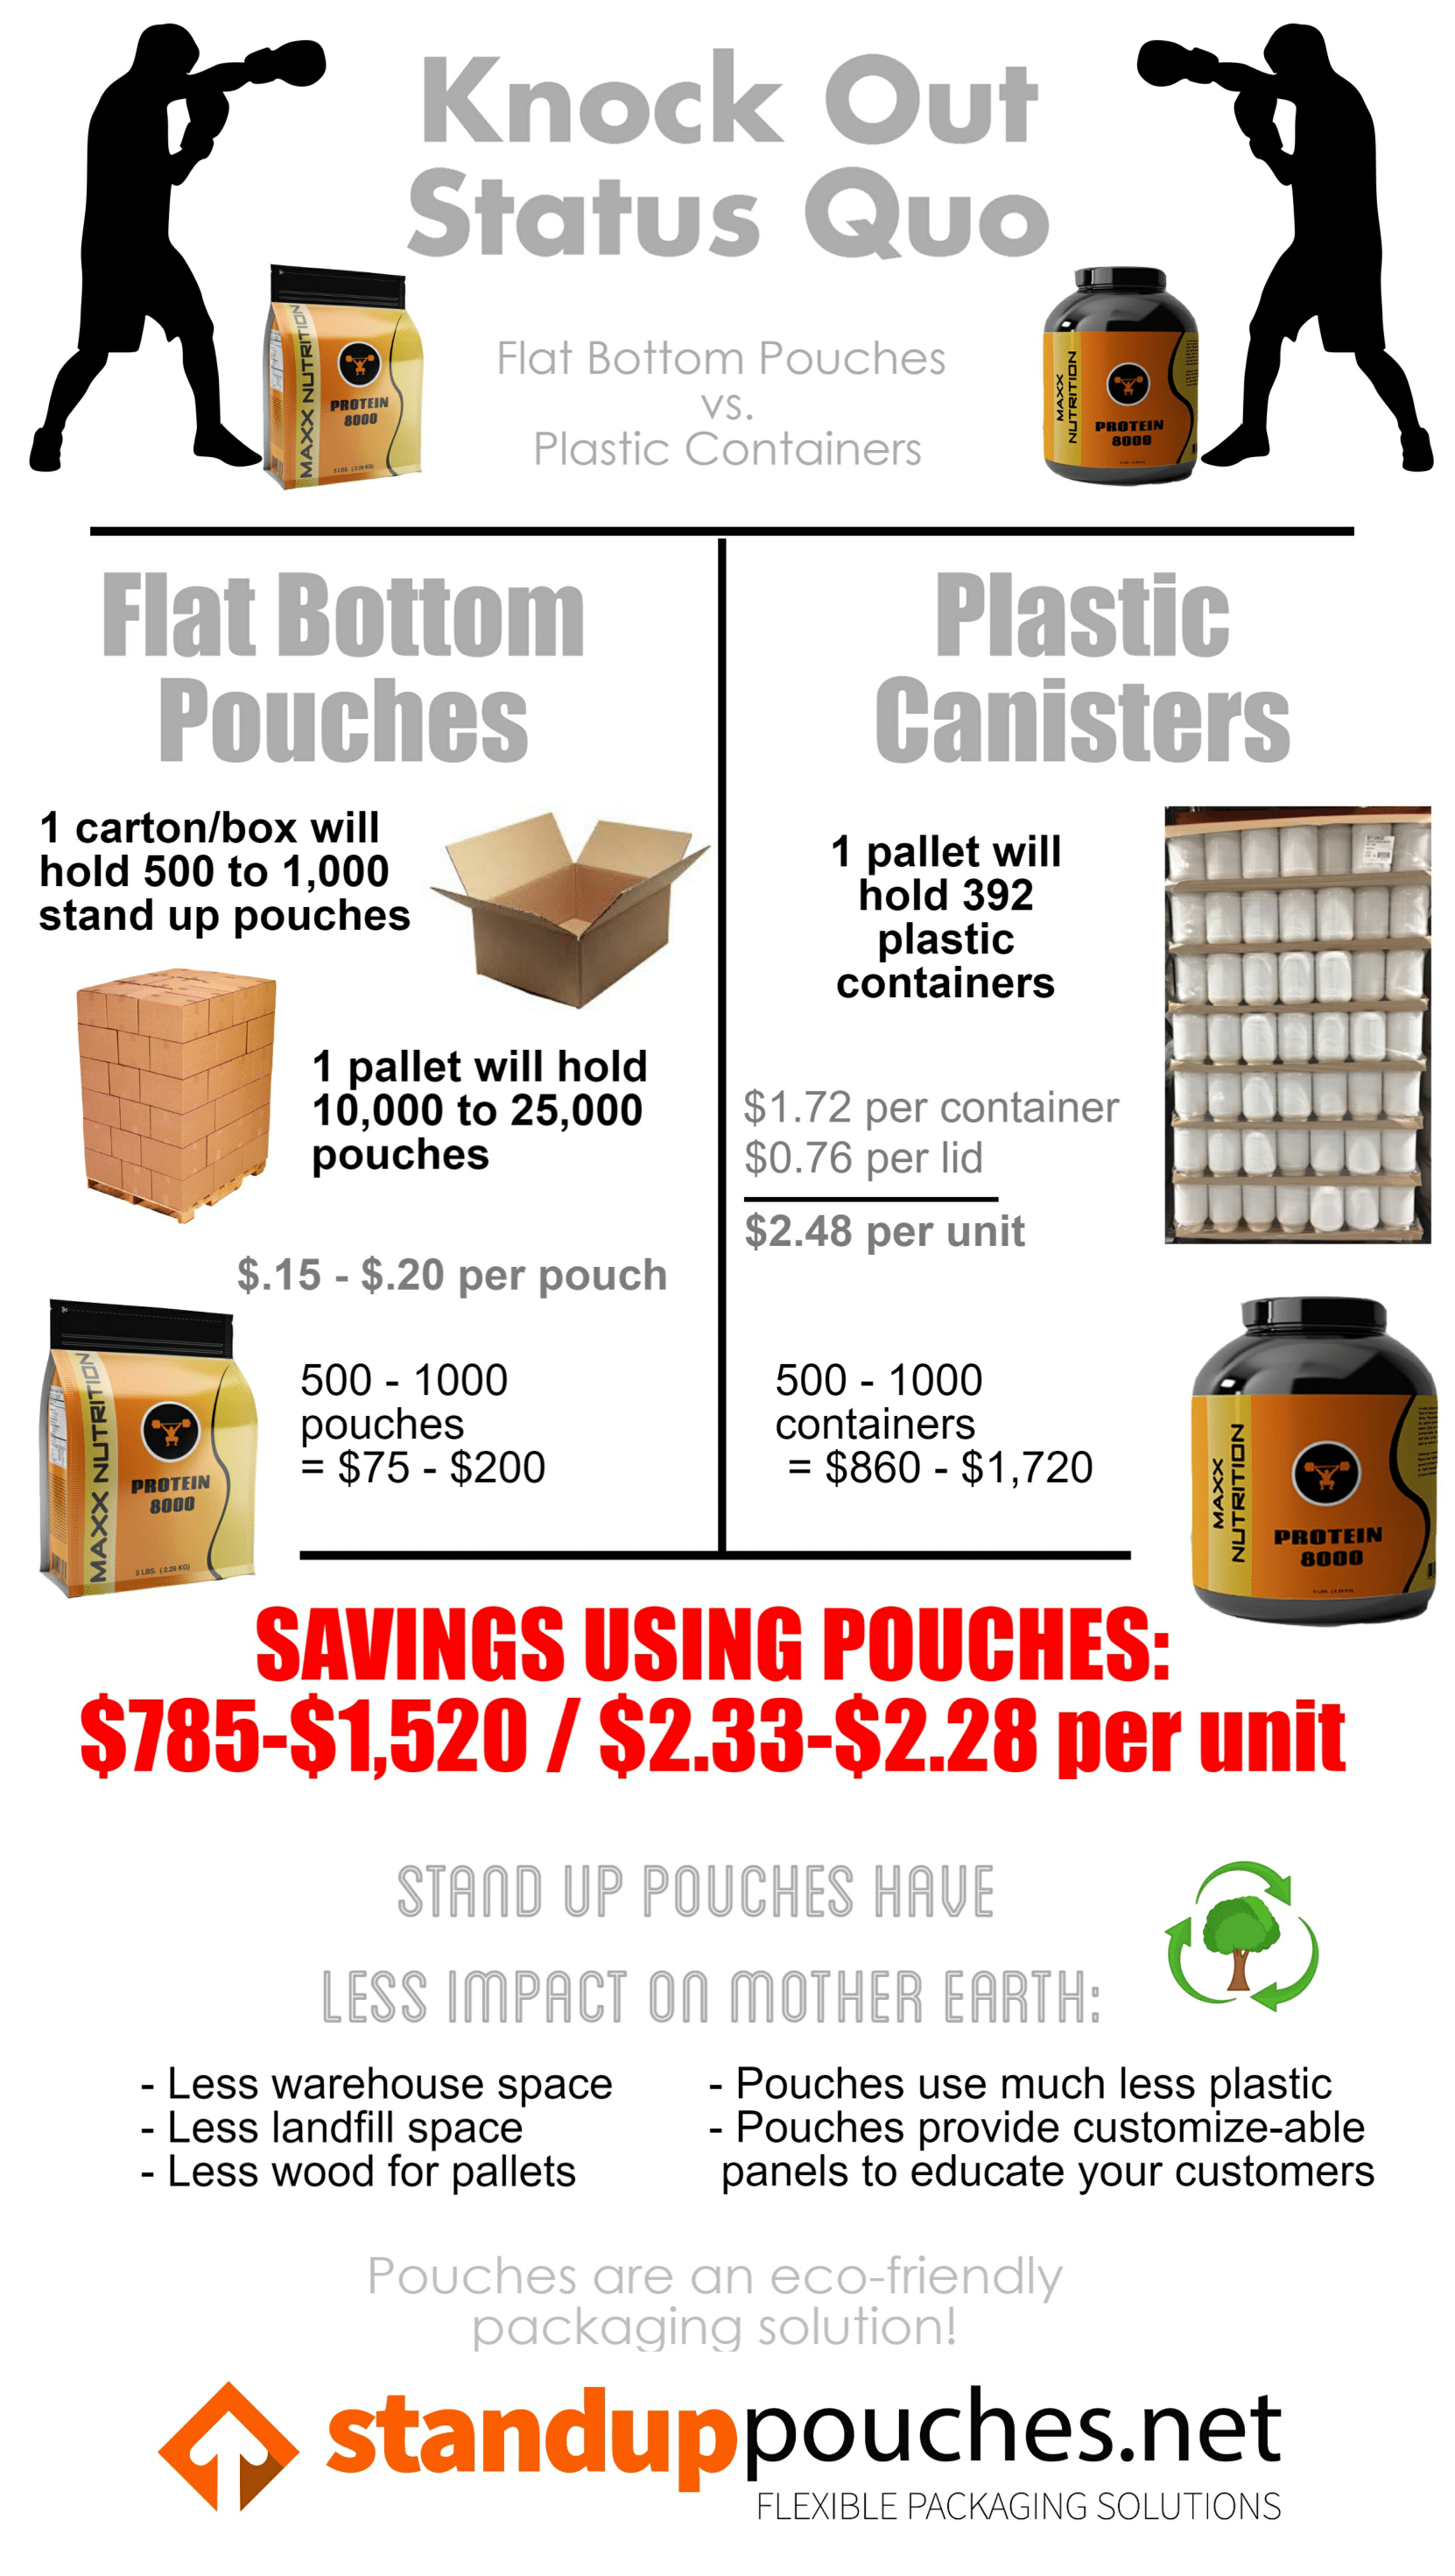 Protein Powder Packaging Infographic